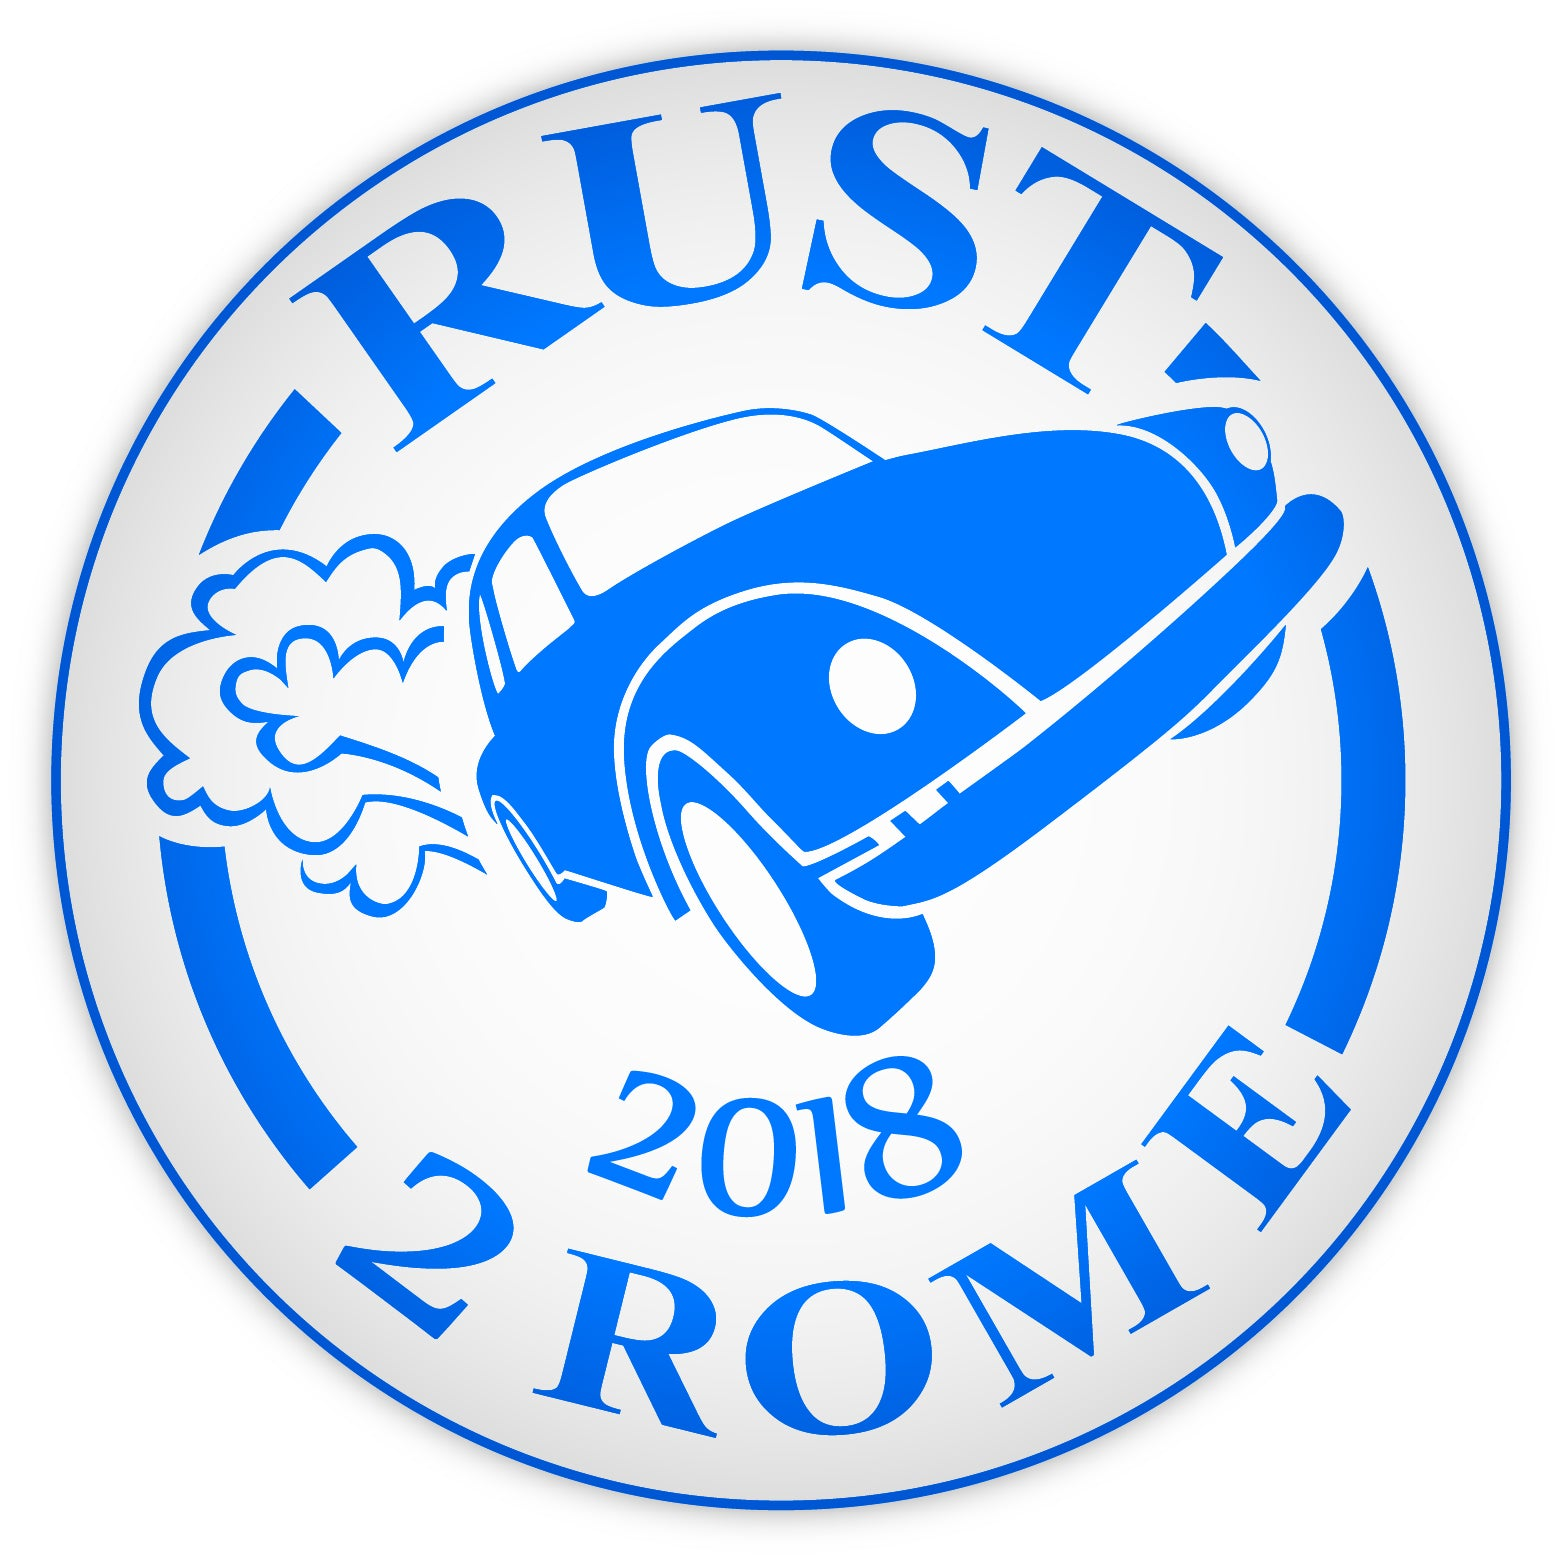 Rust 2 Rome Swiss Alps 2018 Team Of Three